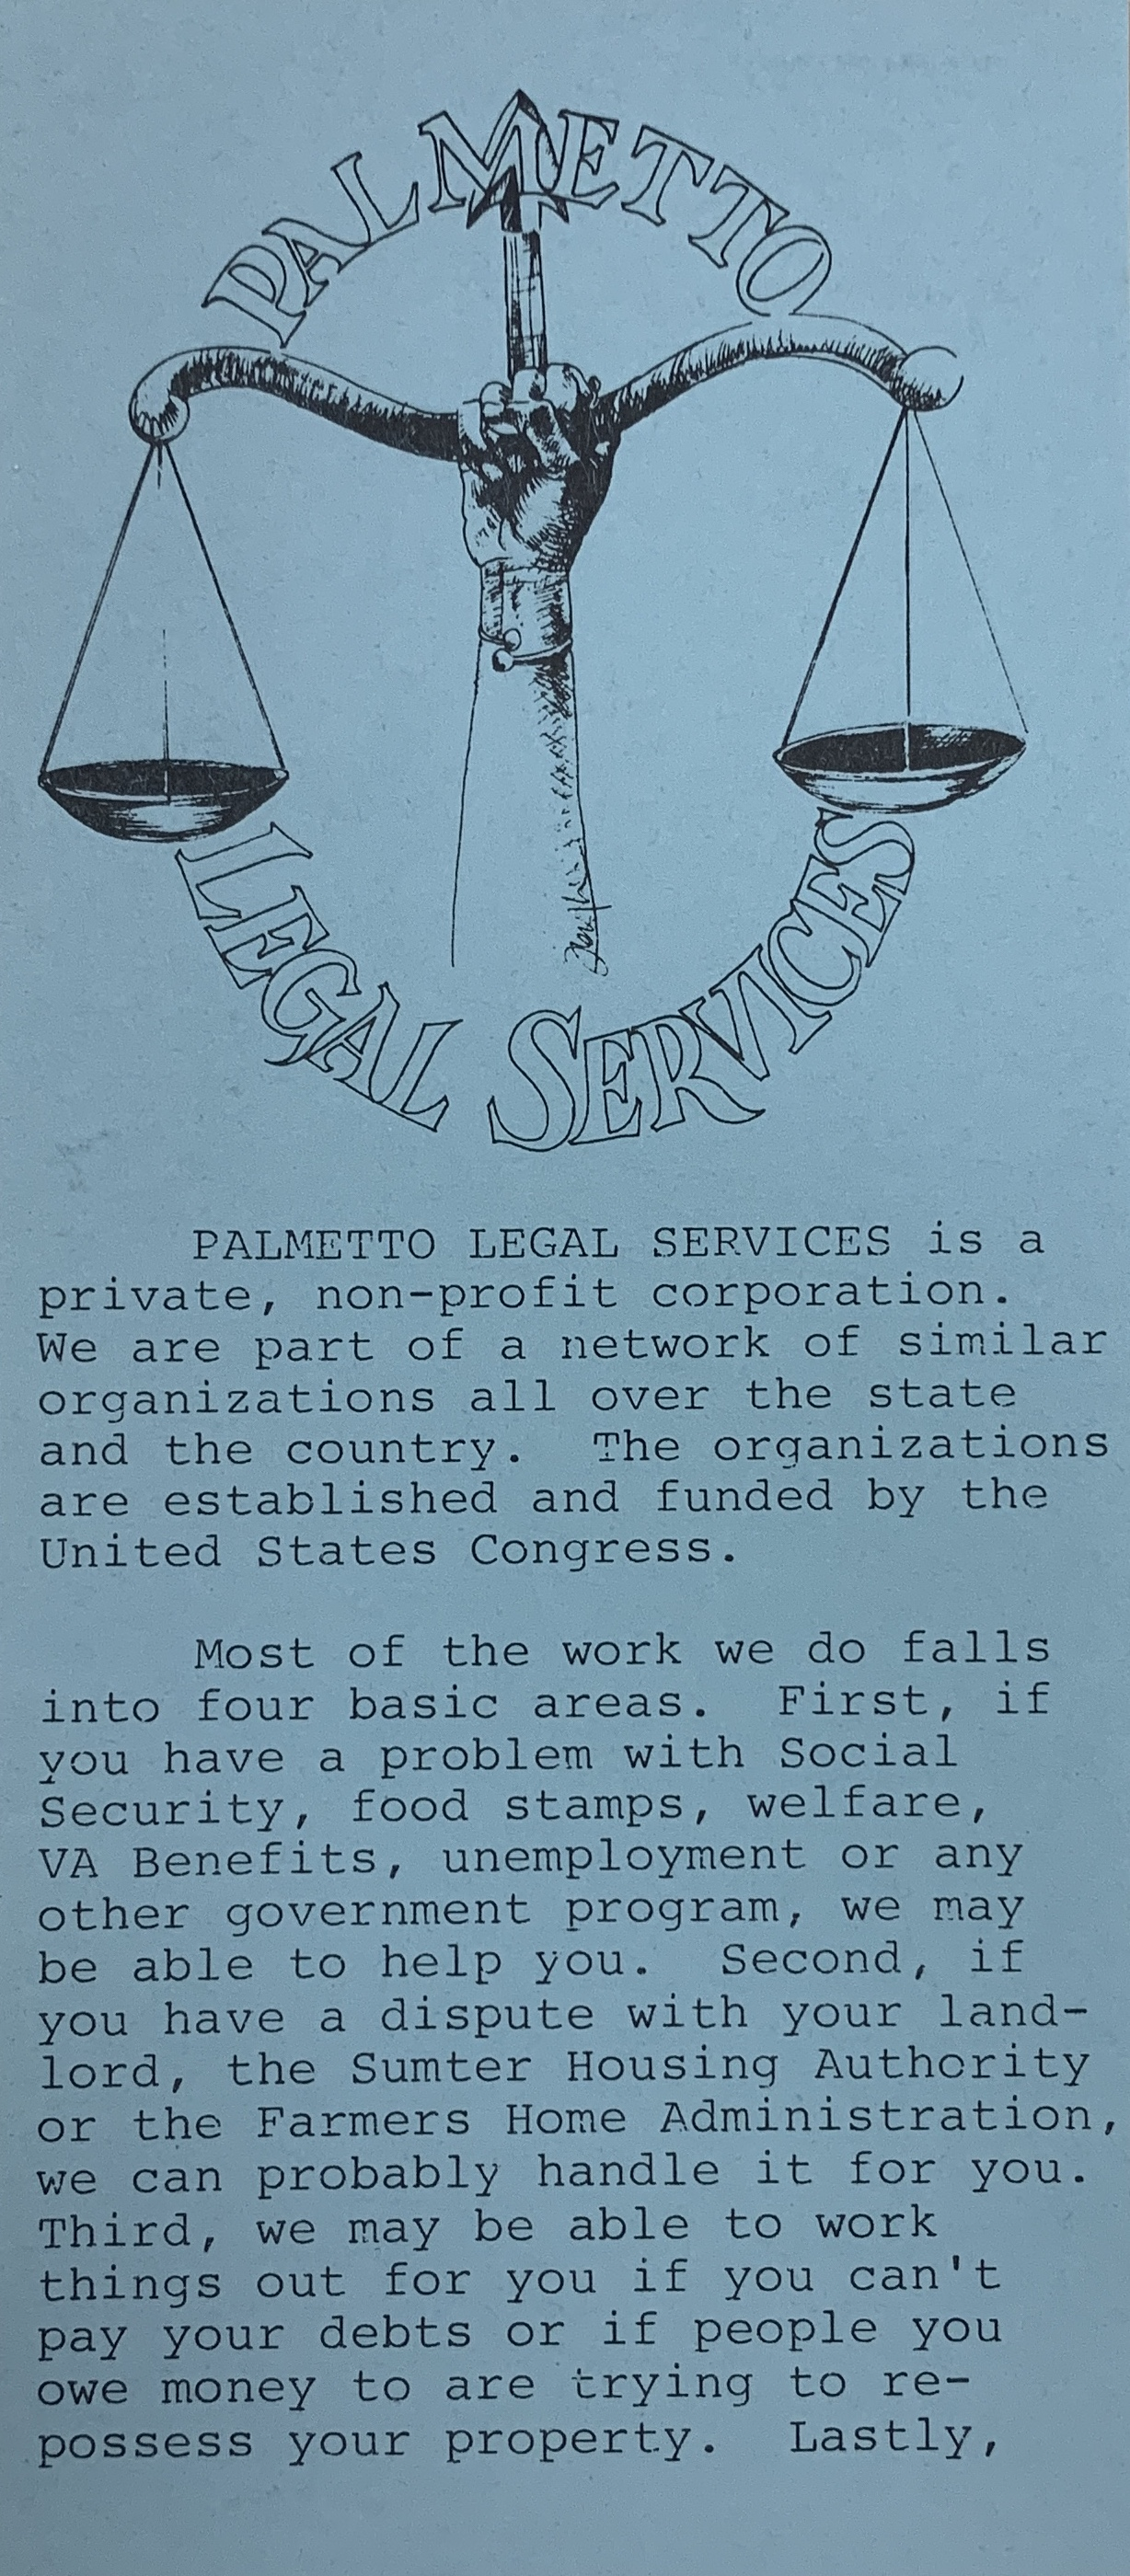 A brochure produced by Palmetto Legal Services, 1980s